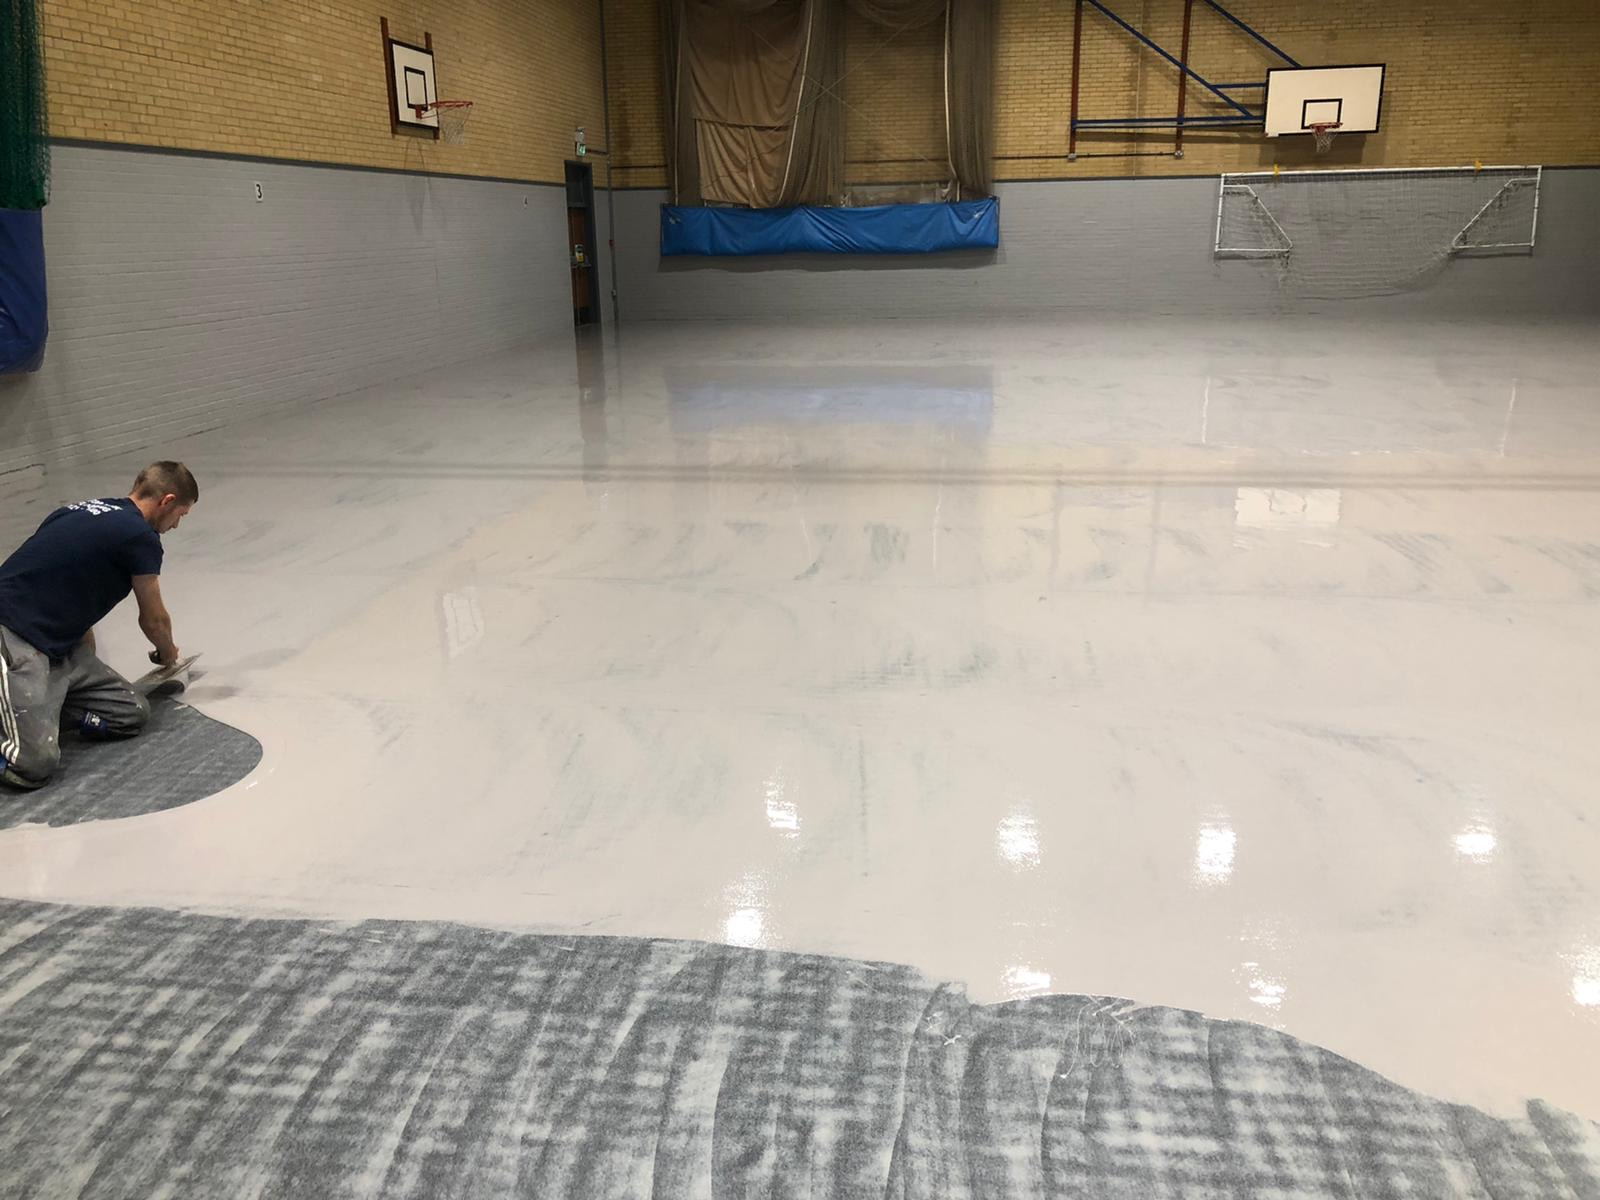 Pulastic sports flooring installation at Sandwich Technology School.